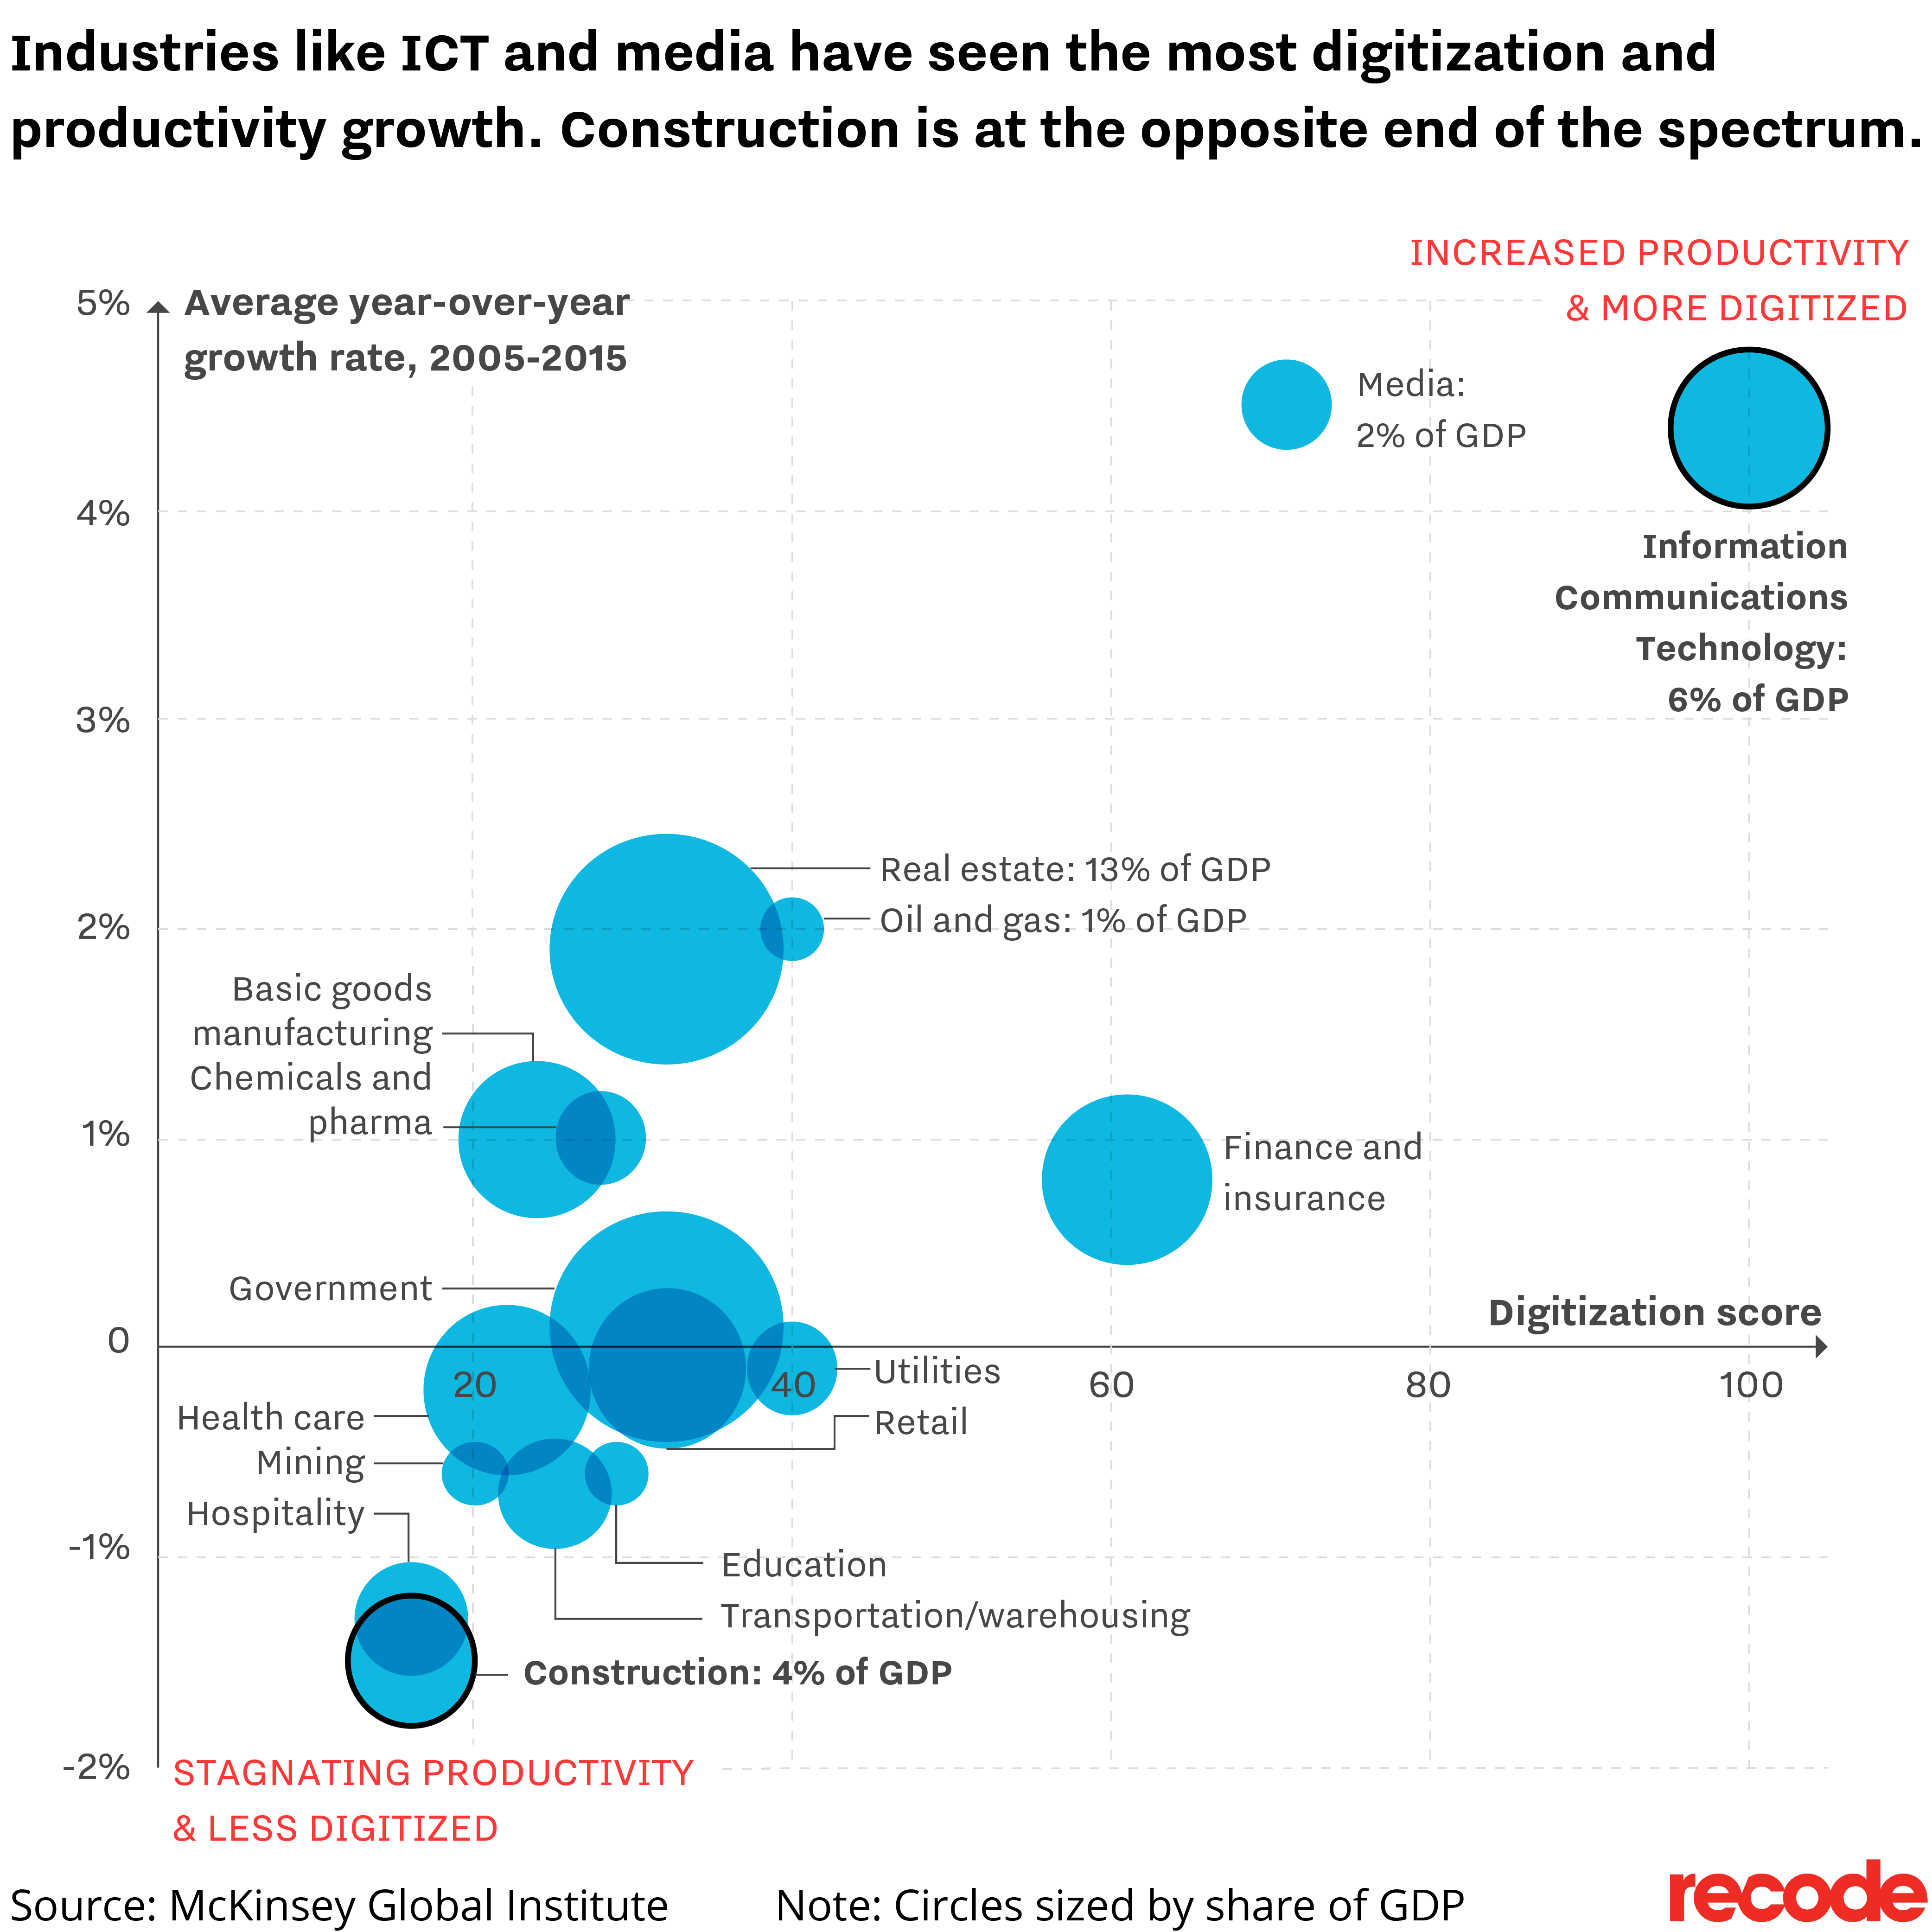 A graph displaying different economic sectors and their corresponding digitization and productivity growth between 2005 and 2015